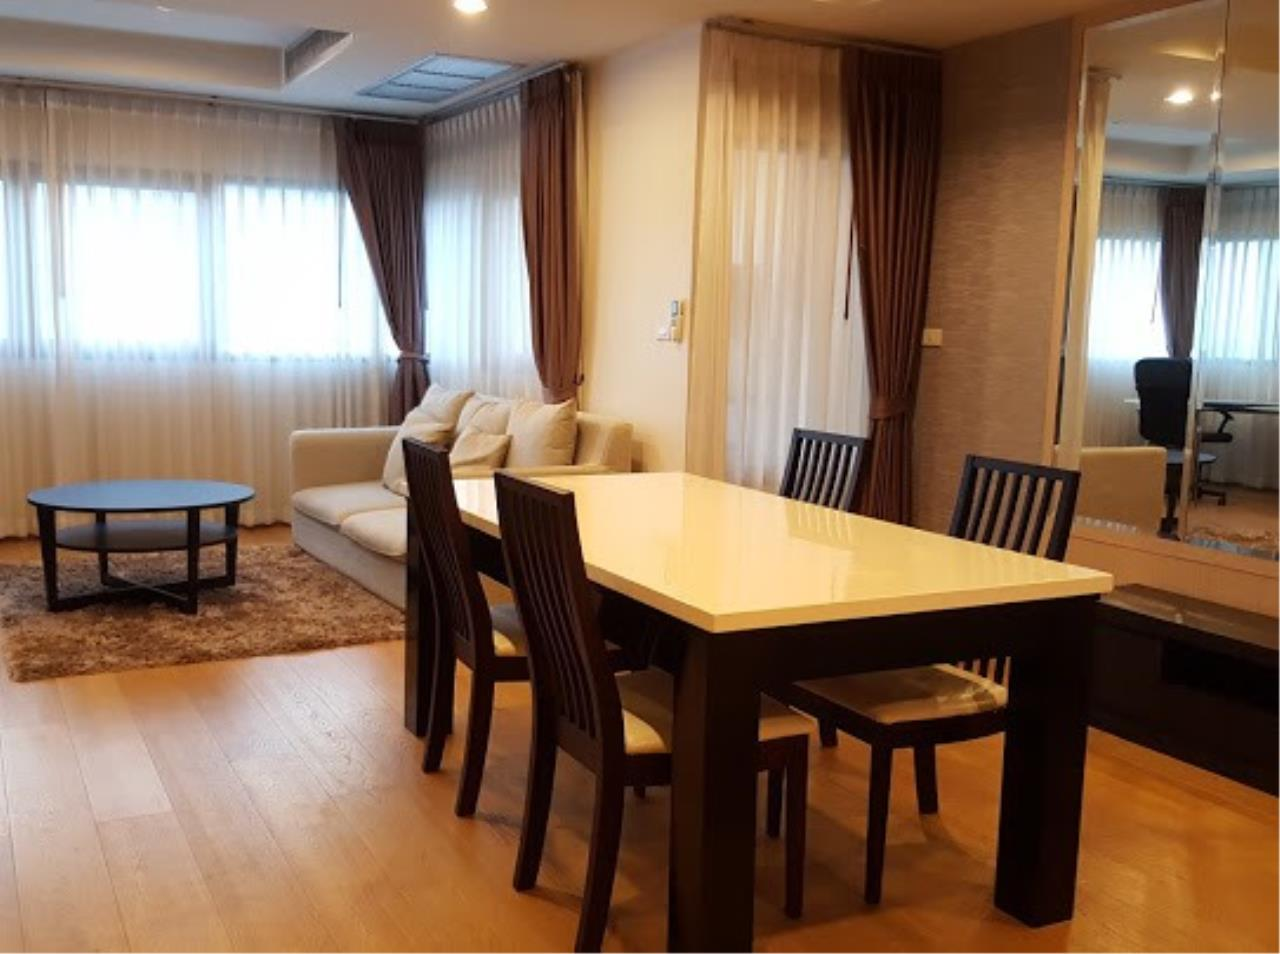 RE/MAX All Star Realty Agency's Sathorn Gardens for rent (MRT Lumpini) 4